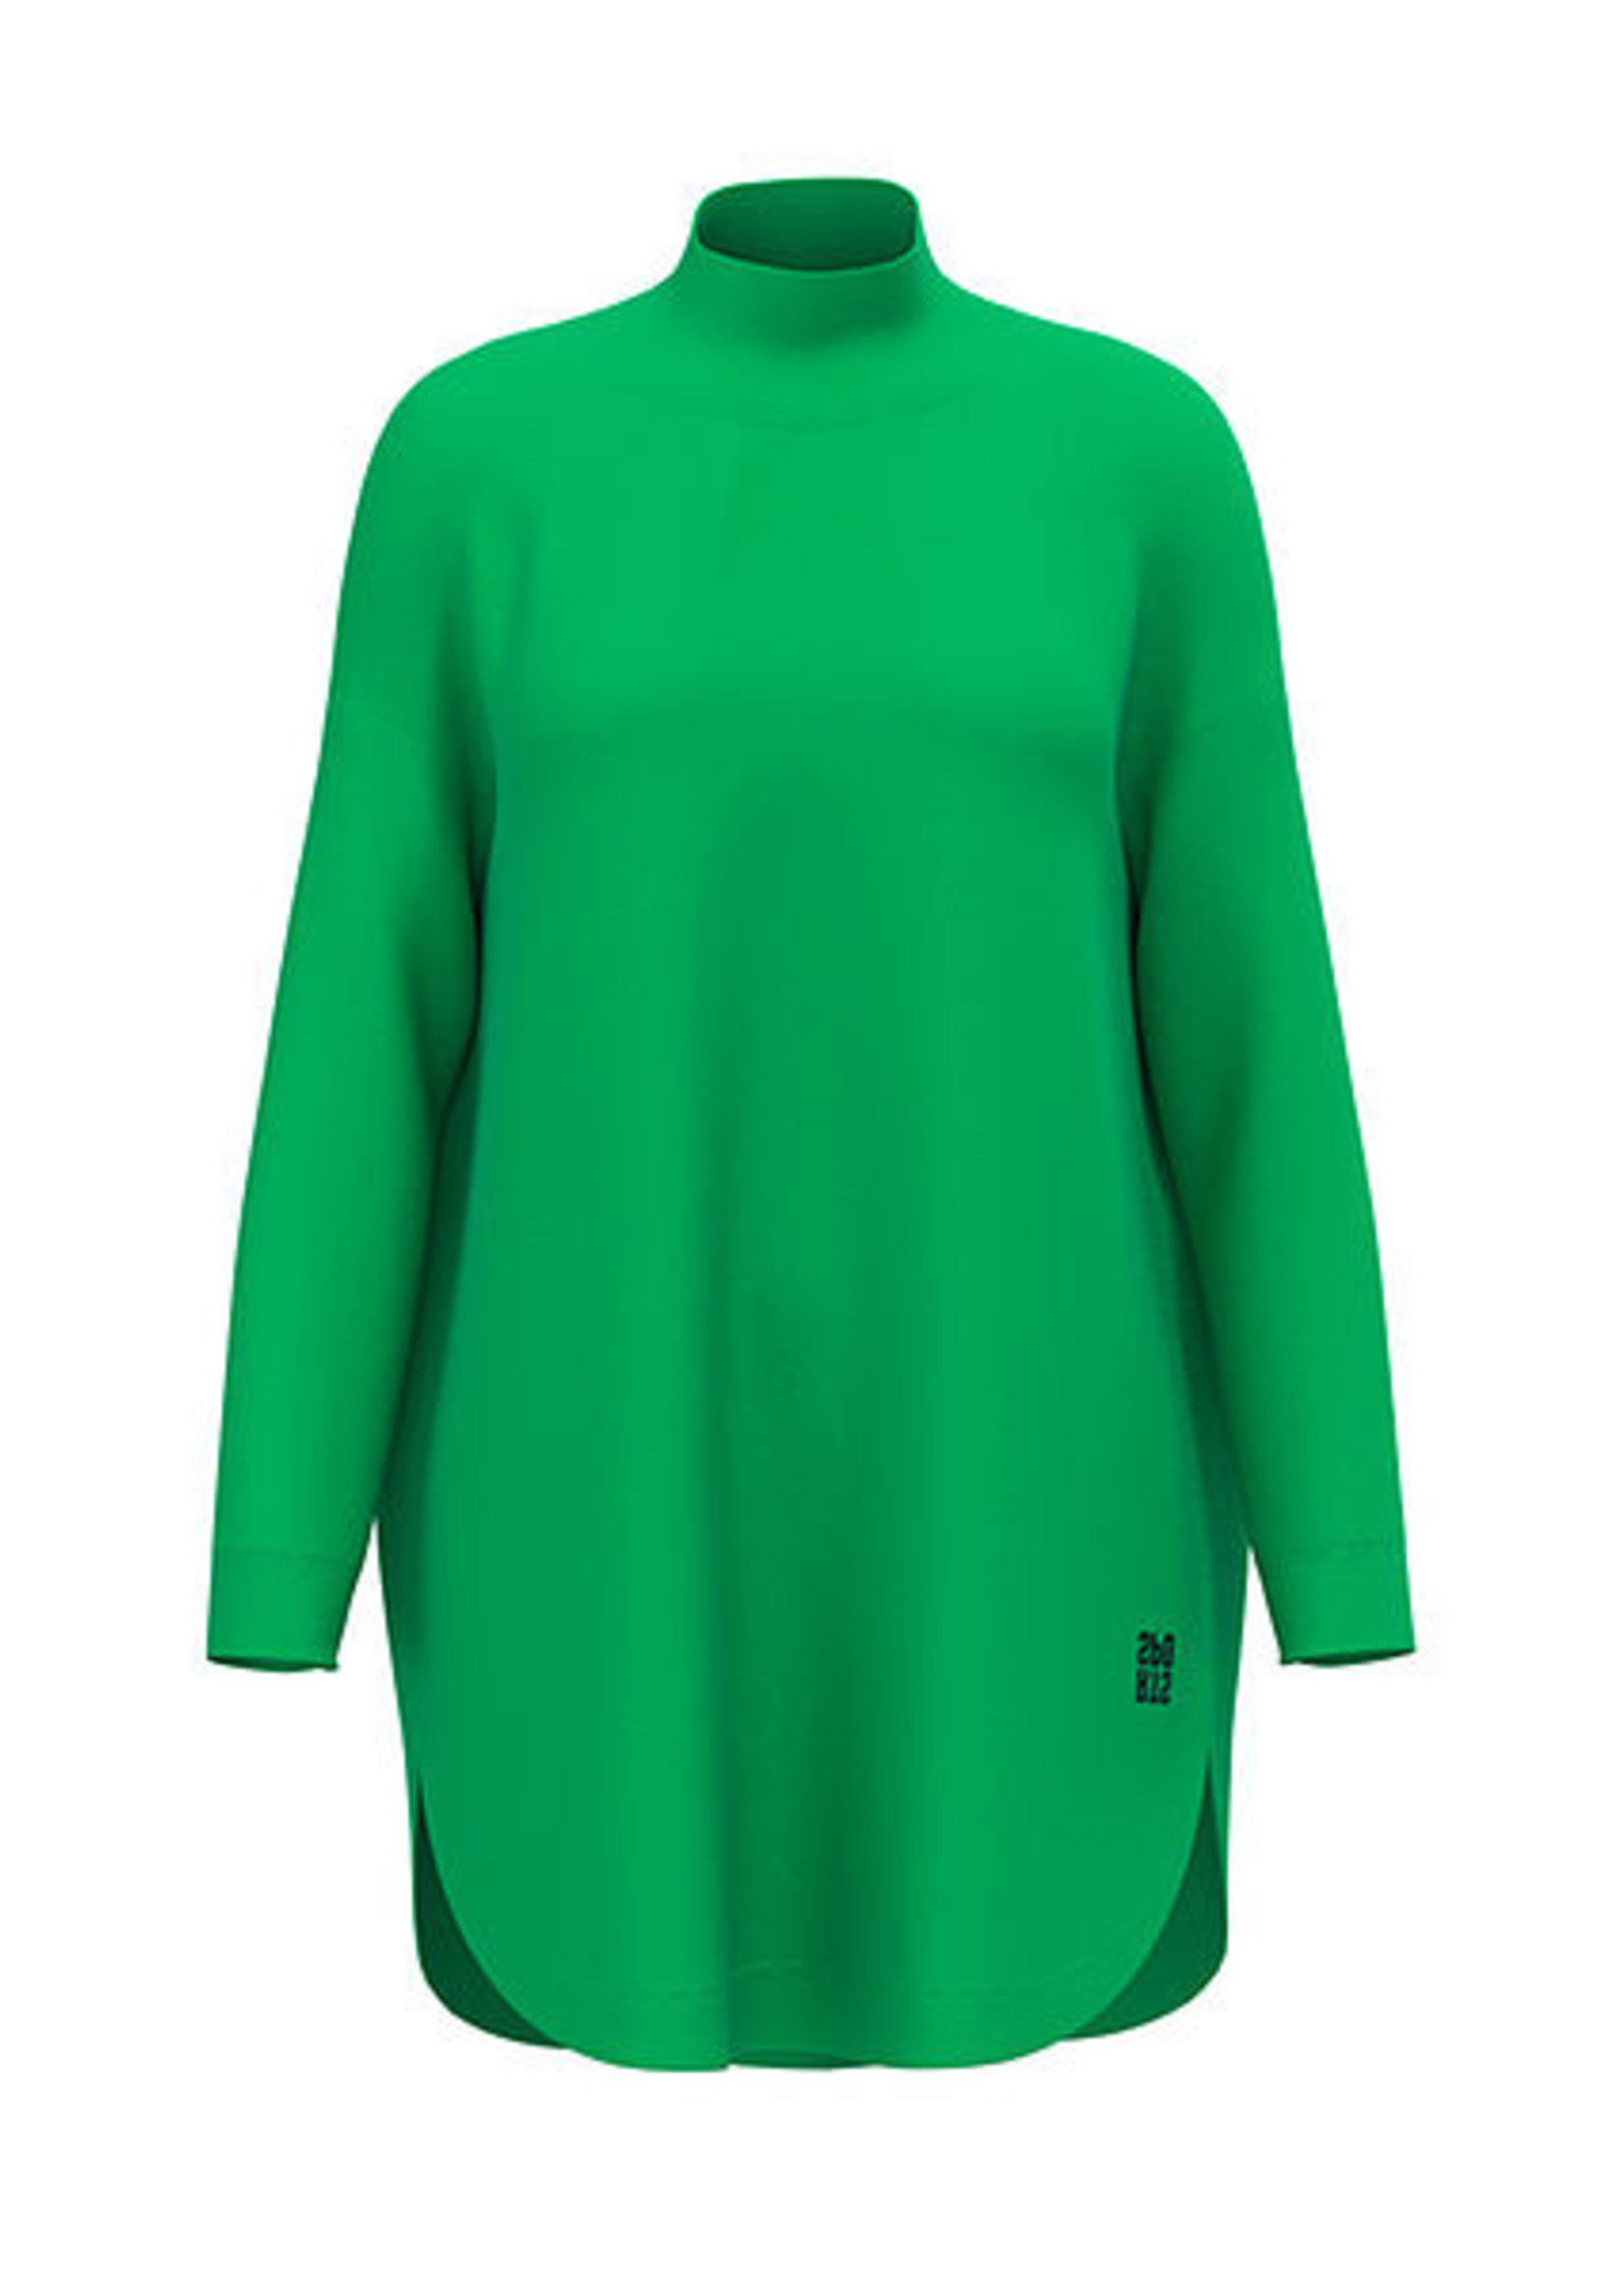 Marccain Sports Sweater RS 41.39 M80 new emerald